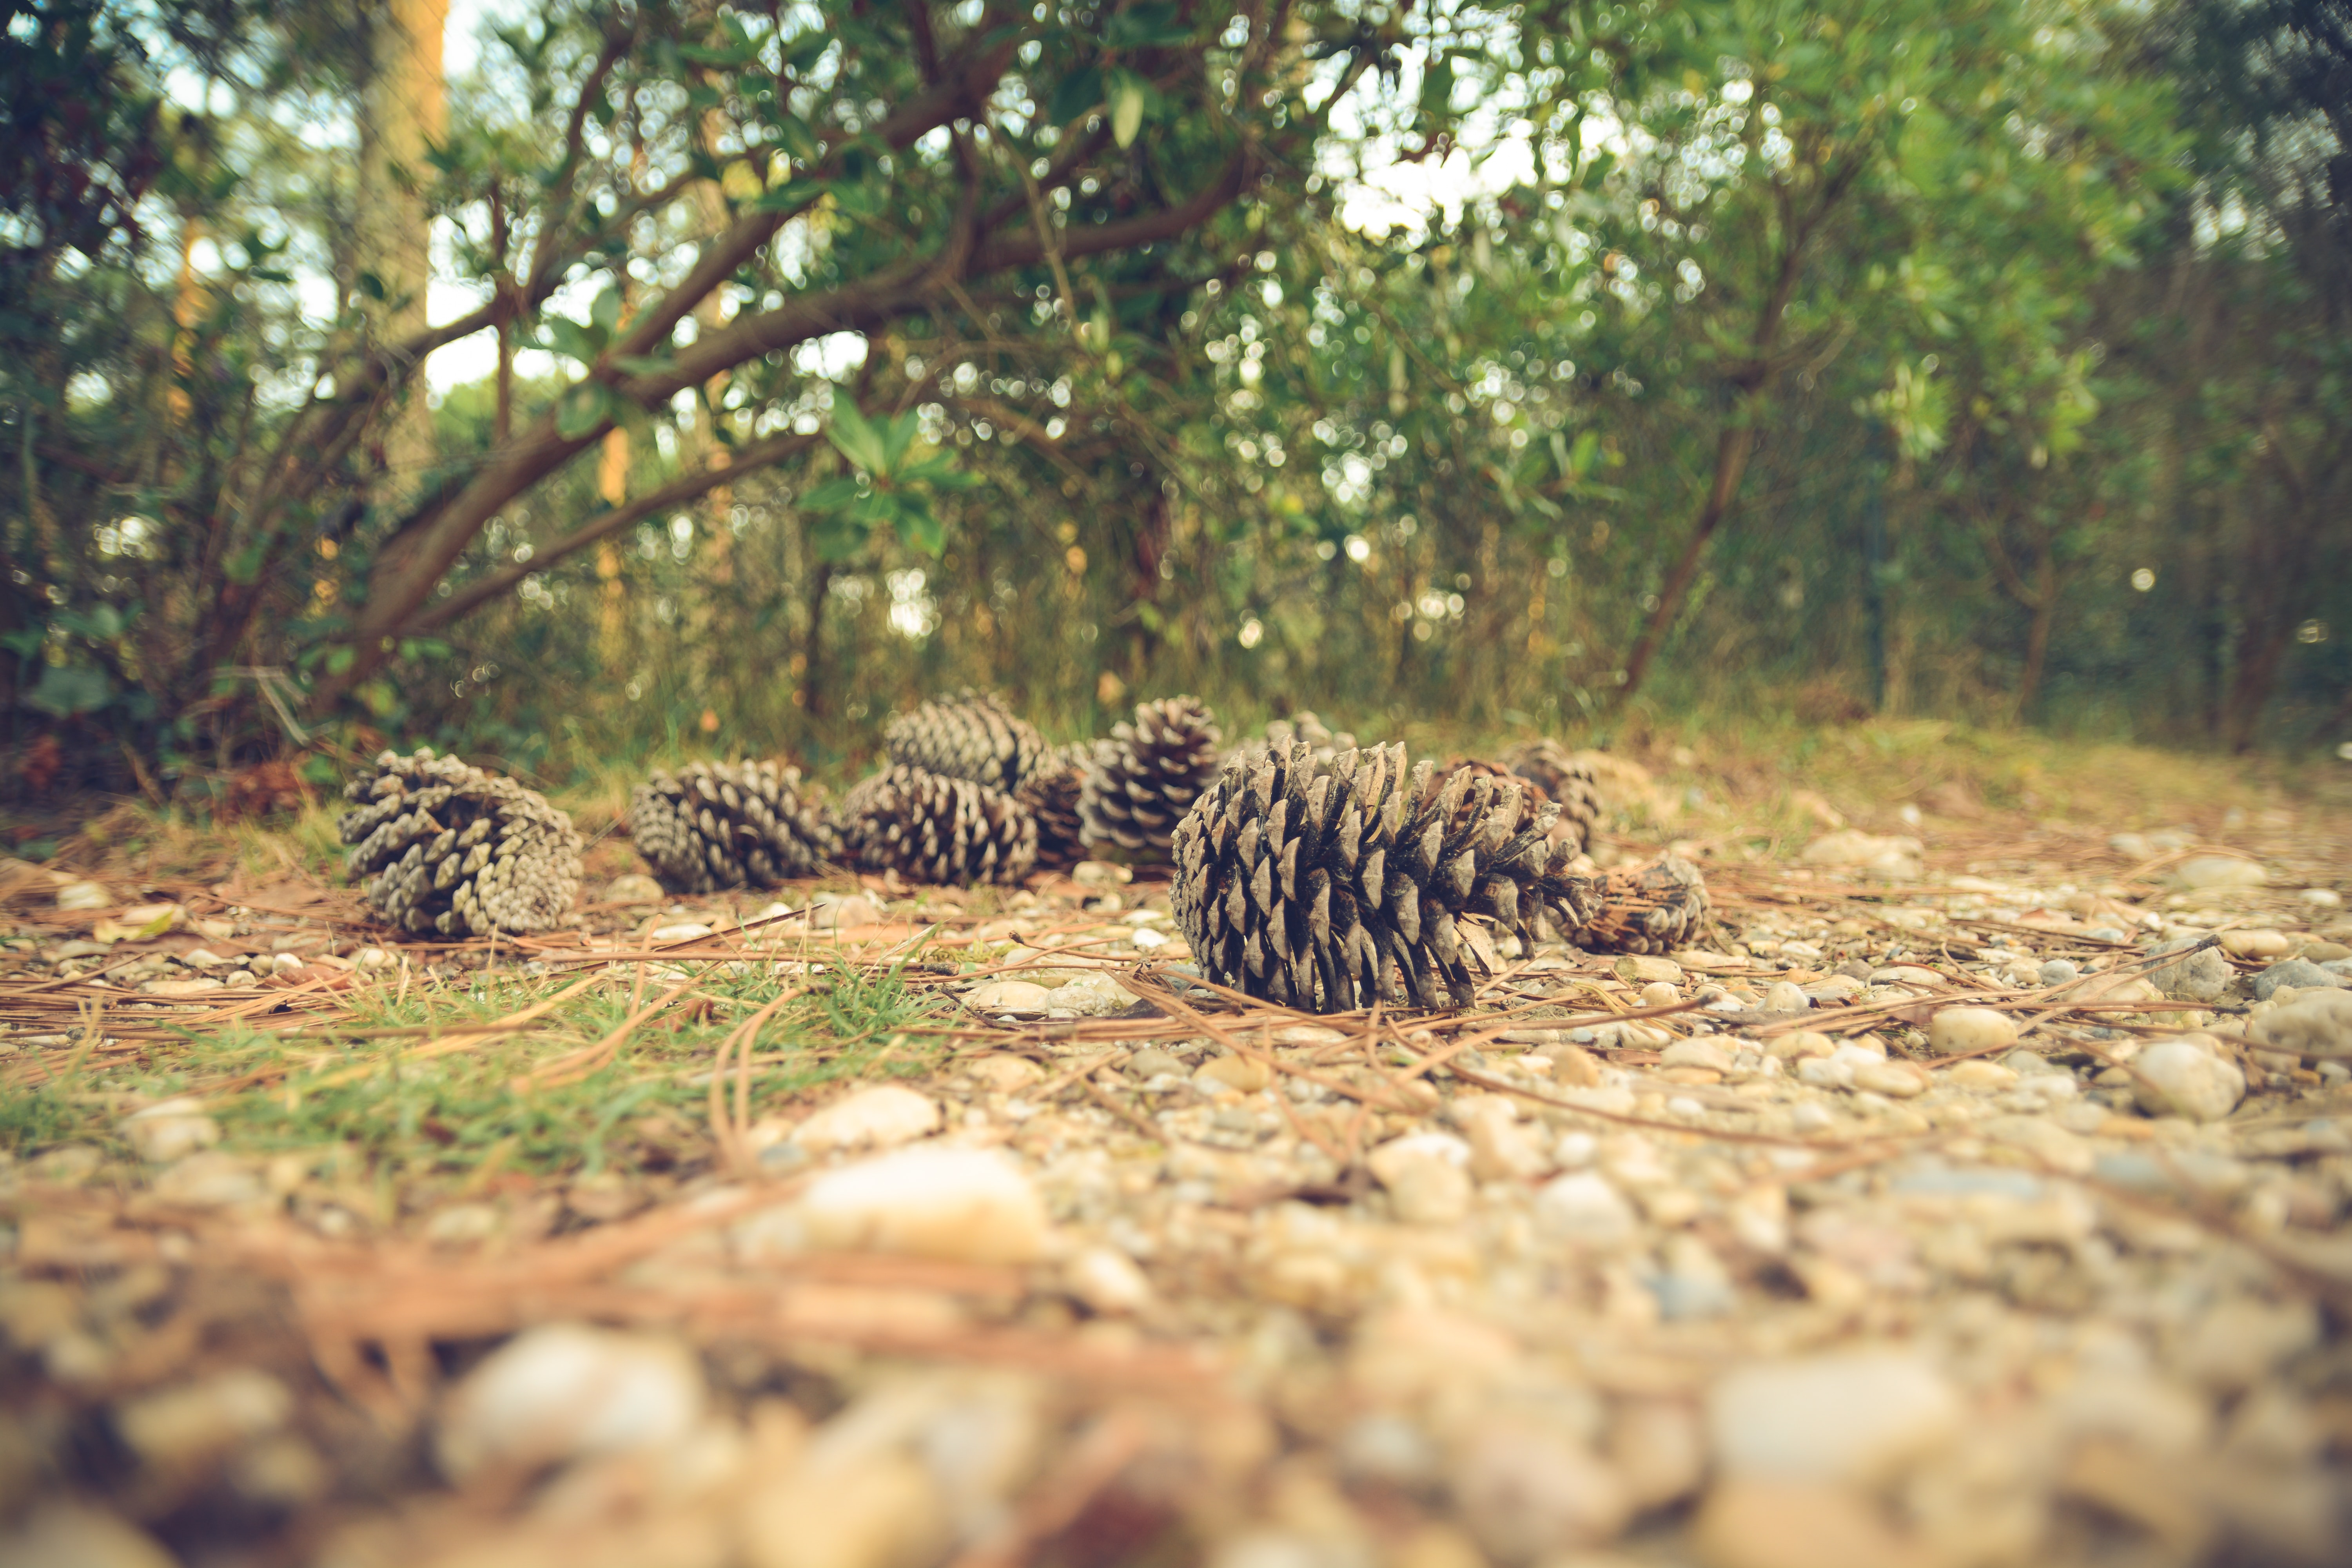 Low shot of a number of conifer cones on the forest floor